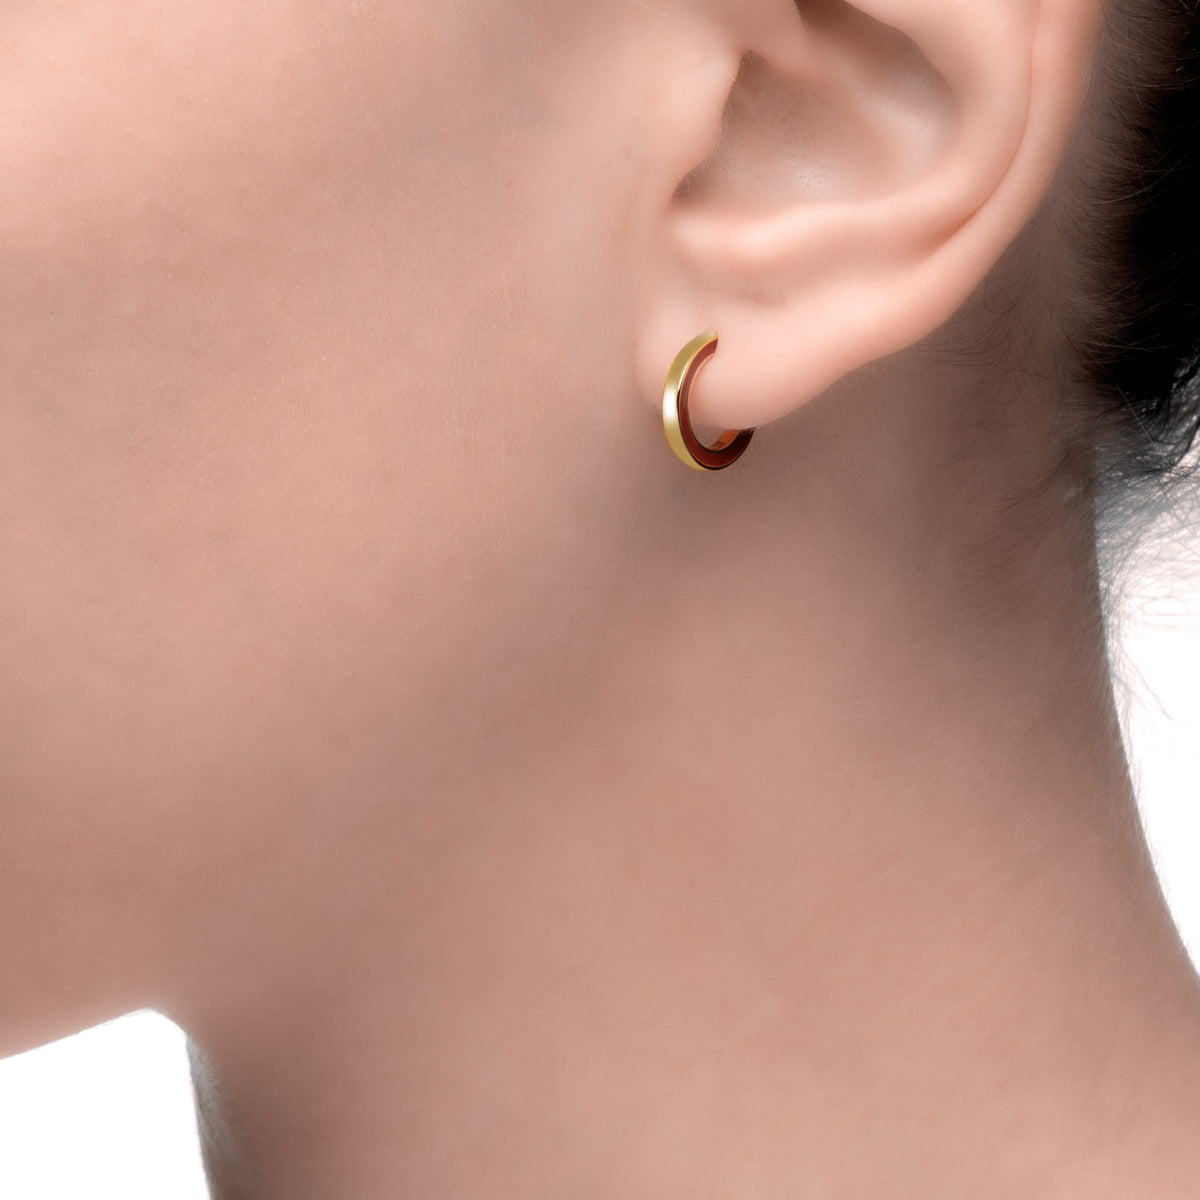 Cardea | Reishi Earrings | 925 Silver | Terra Cotta Red Enamel | 14K Gold Plated